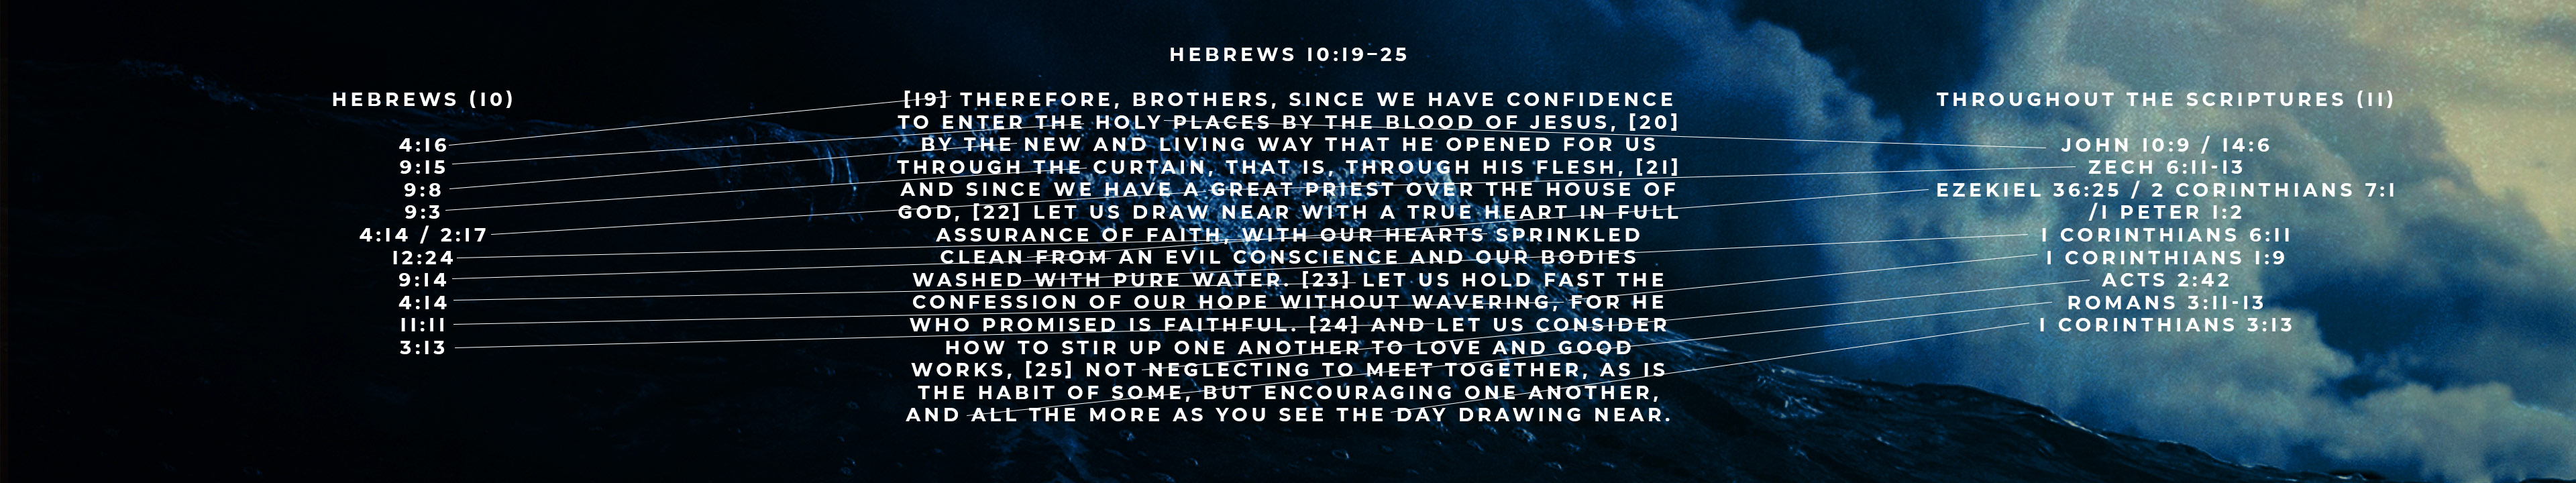 HebrewsScriptureConnections-Web